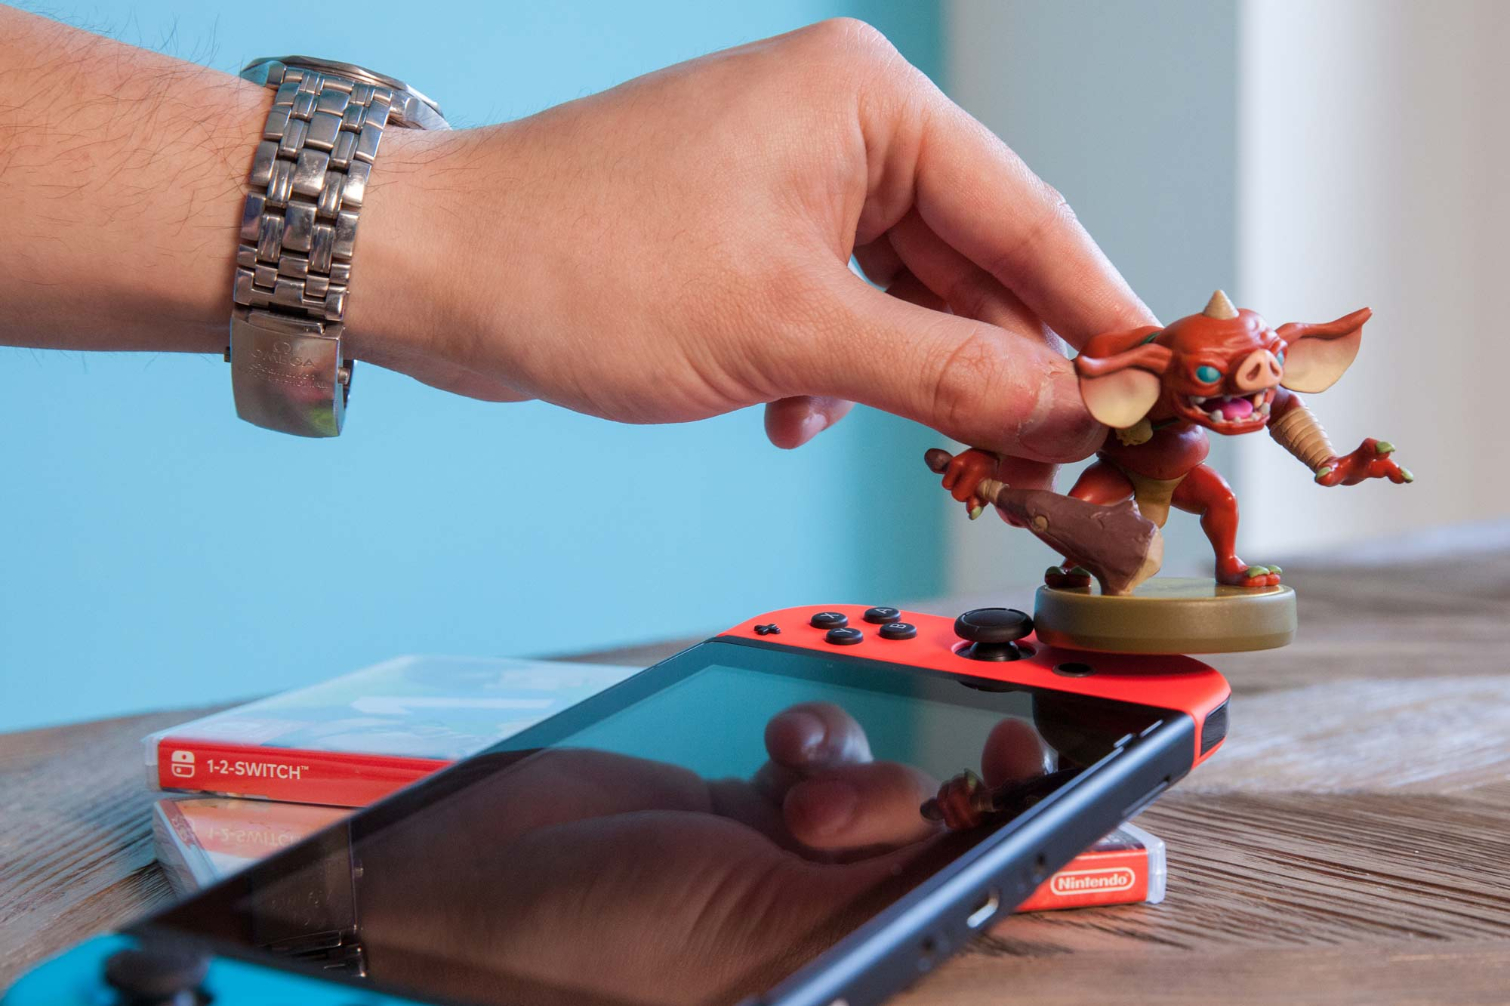 How to Scan Amiibo on Nintendo Switch | Tom's Guide